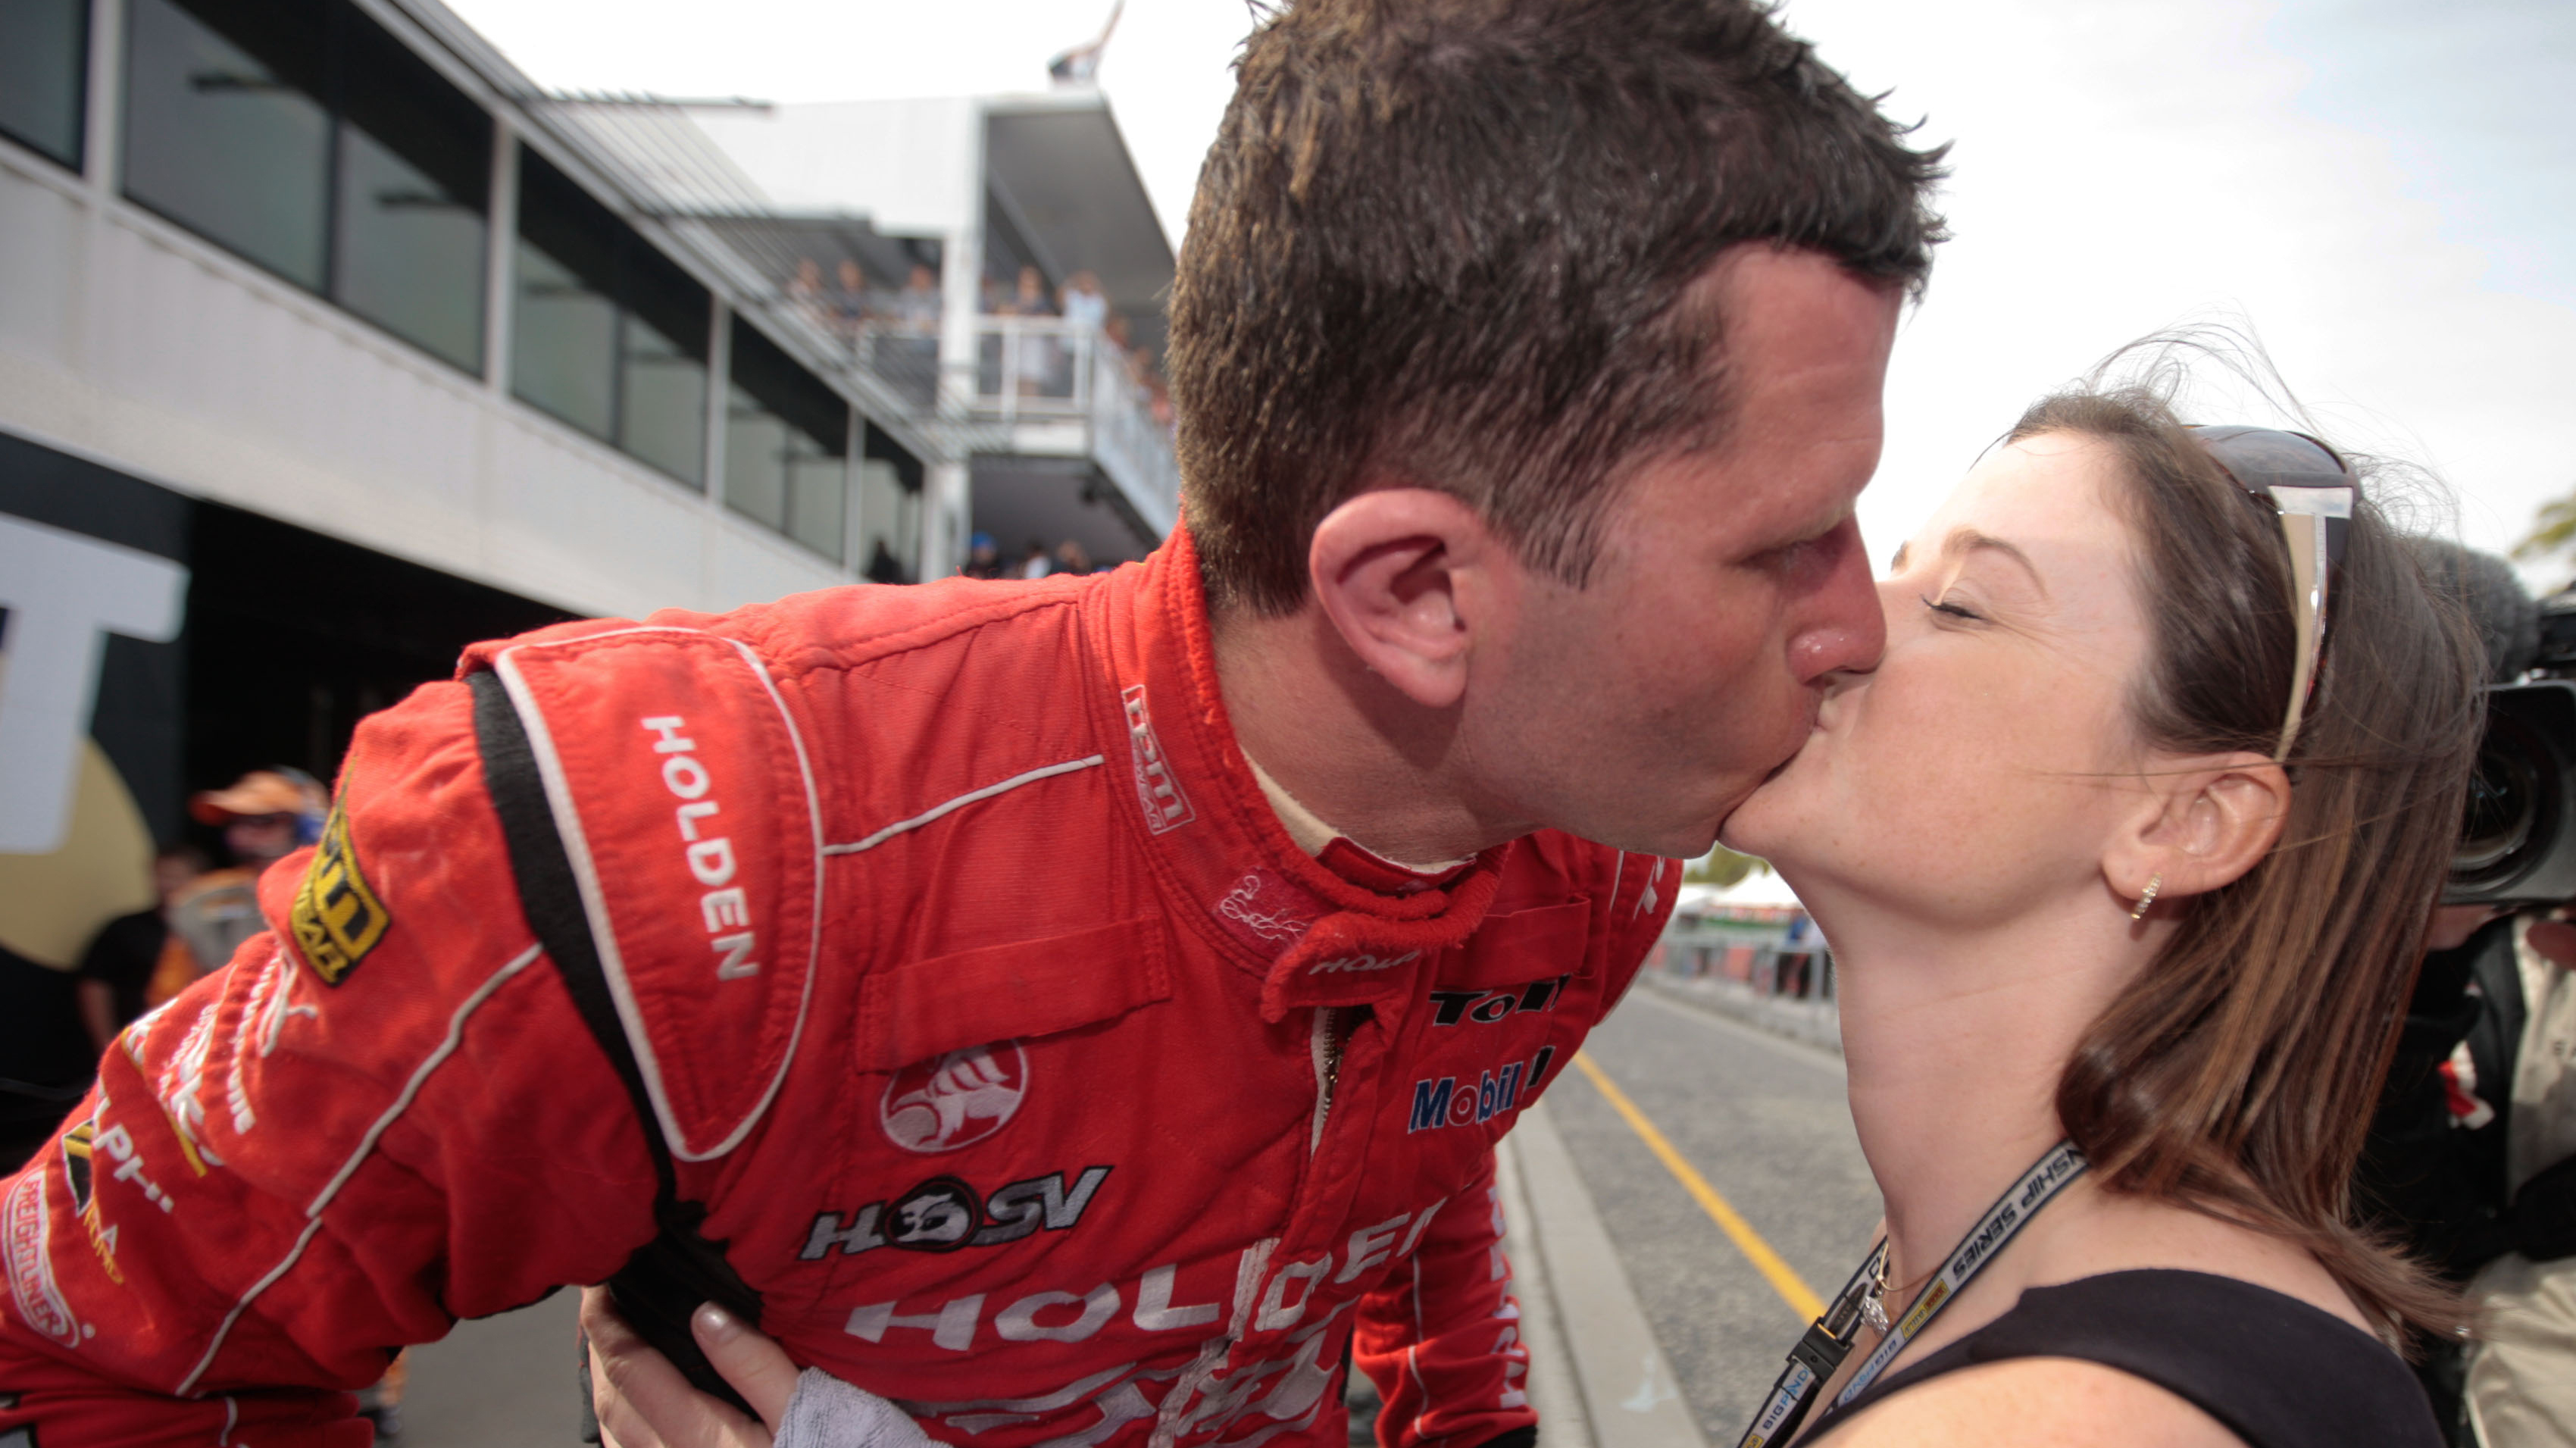 Garth and Leanne Tander will go from husband-wife to rivals.